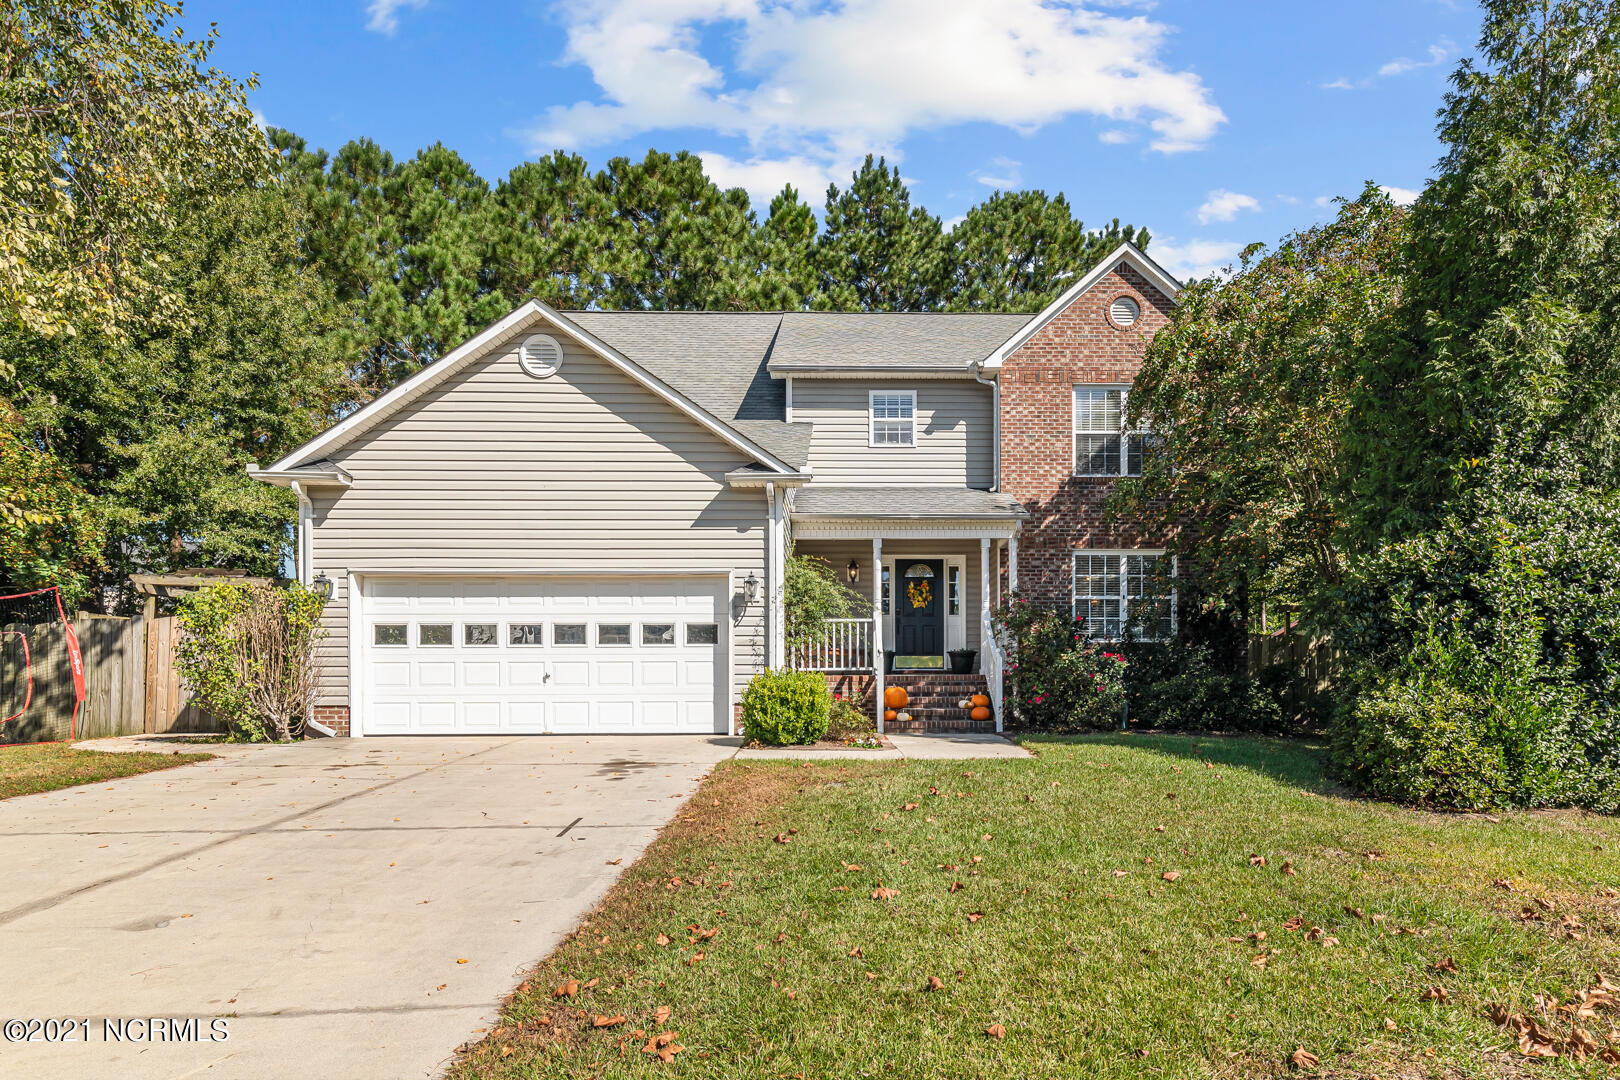 A Northwoods GEM! Beautiful home situated on a cul-de-sac lot. Close to EVERYTHING. Schools, shopping, restaurants, soccer fields, you name it! This home features four bedrooms, 2.5 bathrooms, two living rooms, a formal dining room, a gorgeous updated kitchen, the list goes on and on! Downstairs you'll find an adorable eat in nook off the kitchen that leads into the family room and then out to your fenced in backyard. The formal dining room is adjacent to the kitchen which makes entertaining a breeze. The second living room serves numerous purposes - office, play room, kid hang out space, craft space, you name it! Upstairs you'll find the generously sized master suite/bath/closet. Plus three additional bedrooms (each with their own walk in closet and ceiling fan!) and another full bath! This home has all the space you could need. Come check it out today!